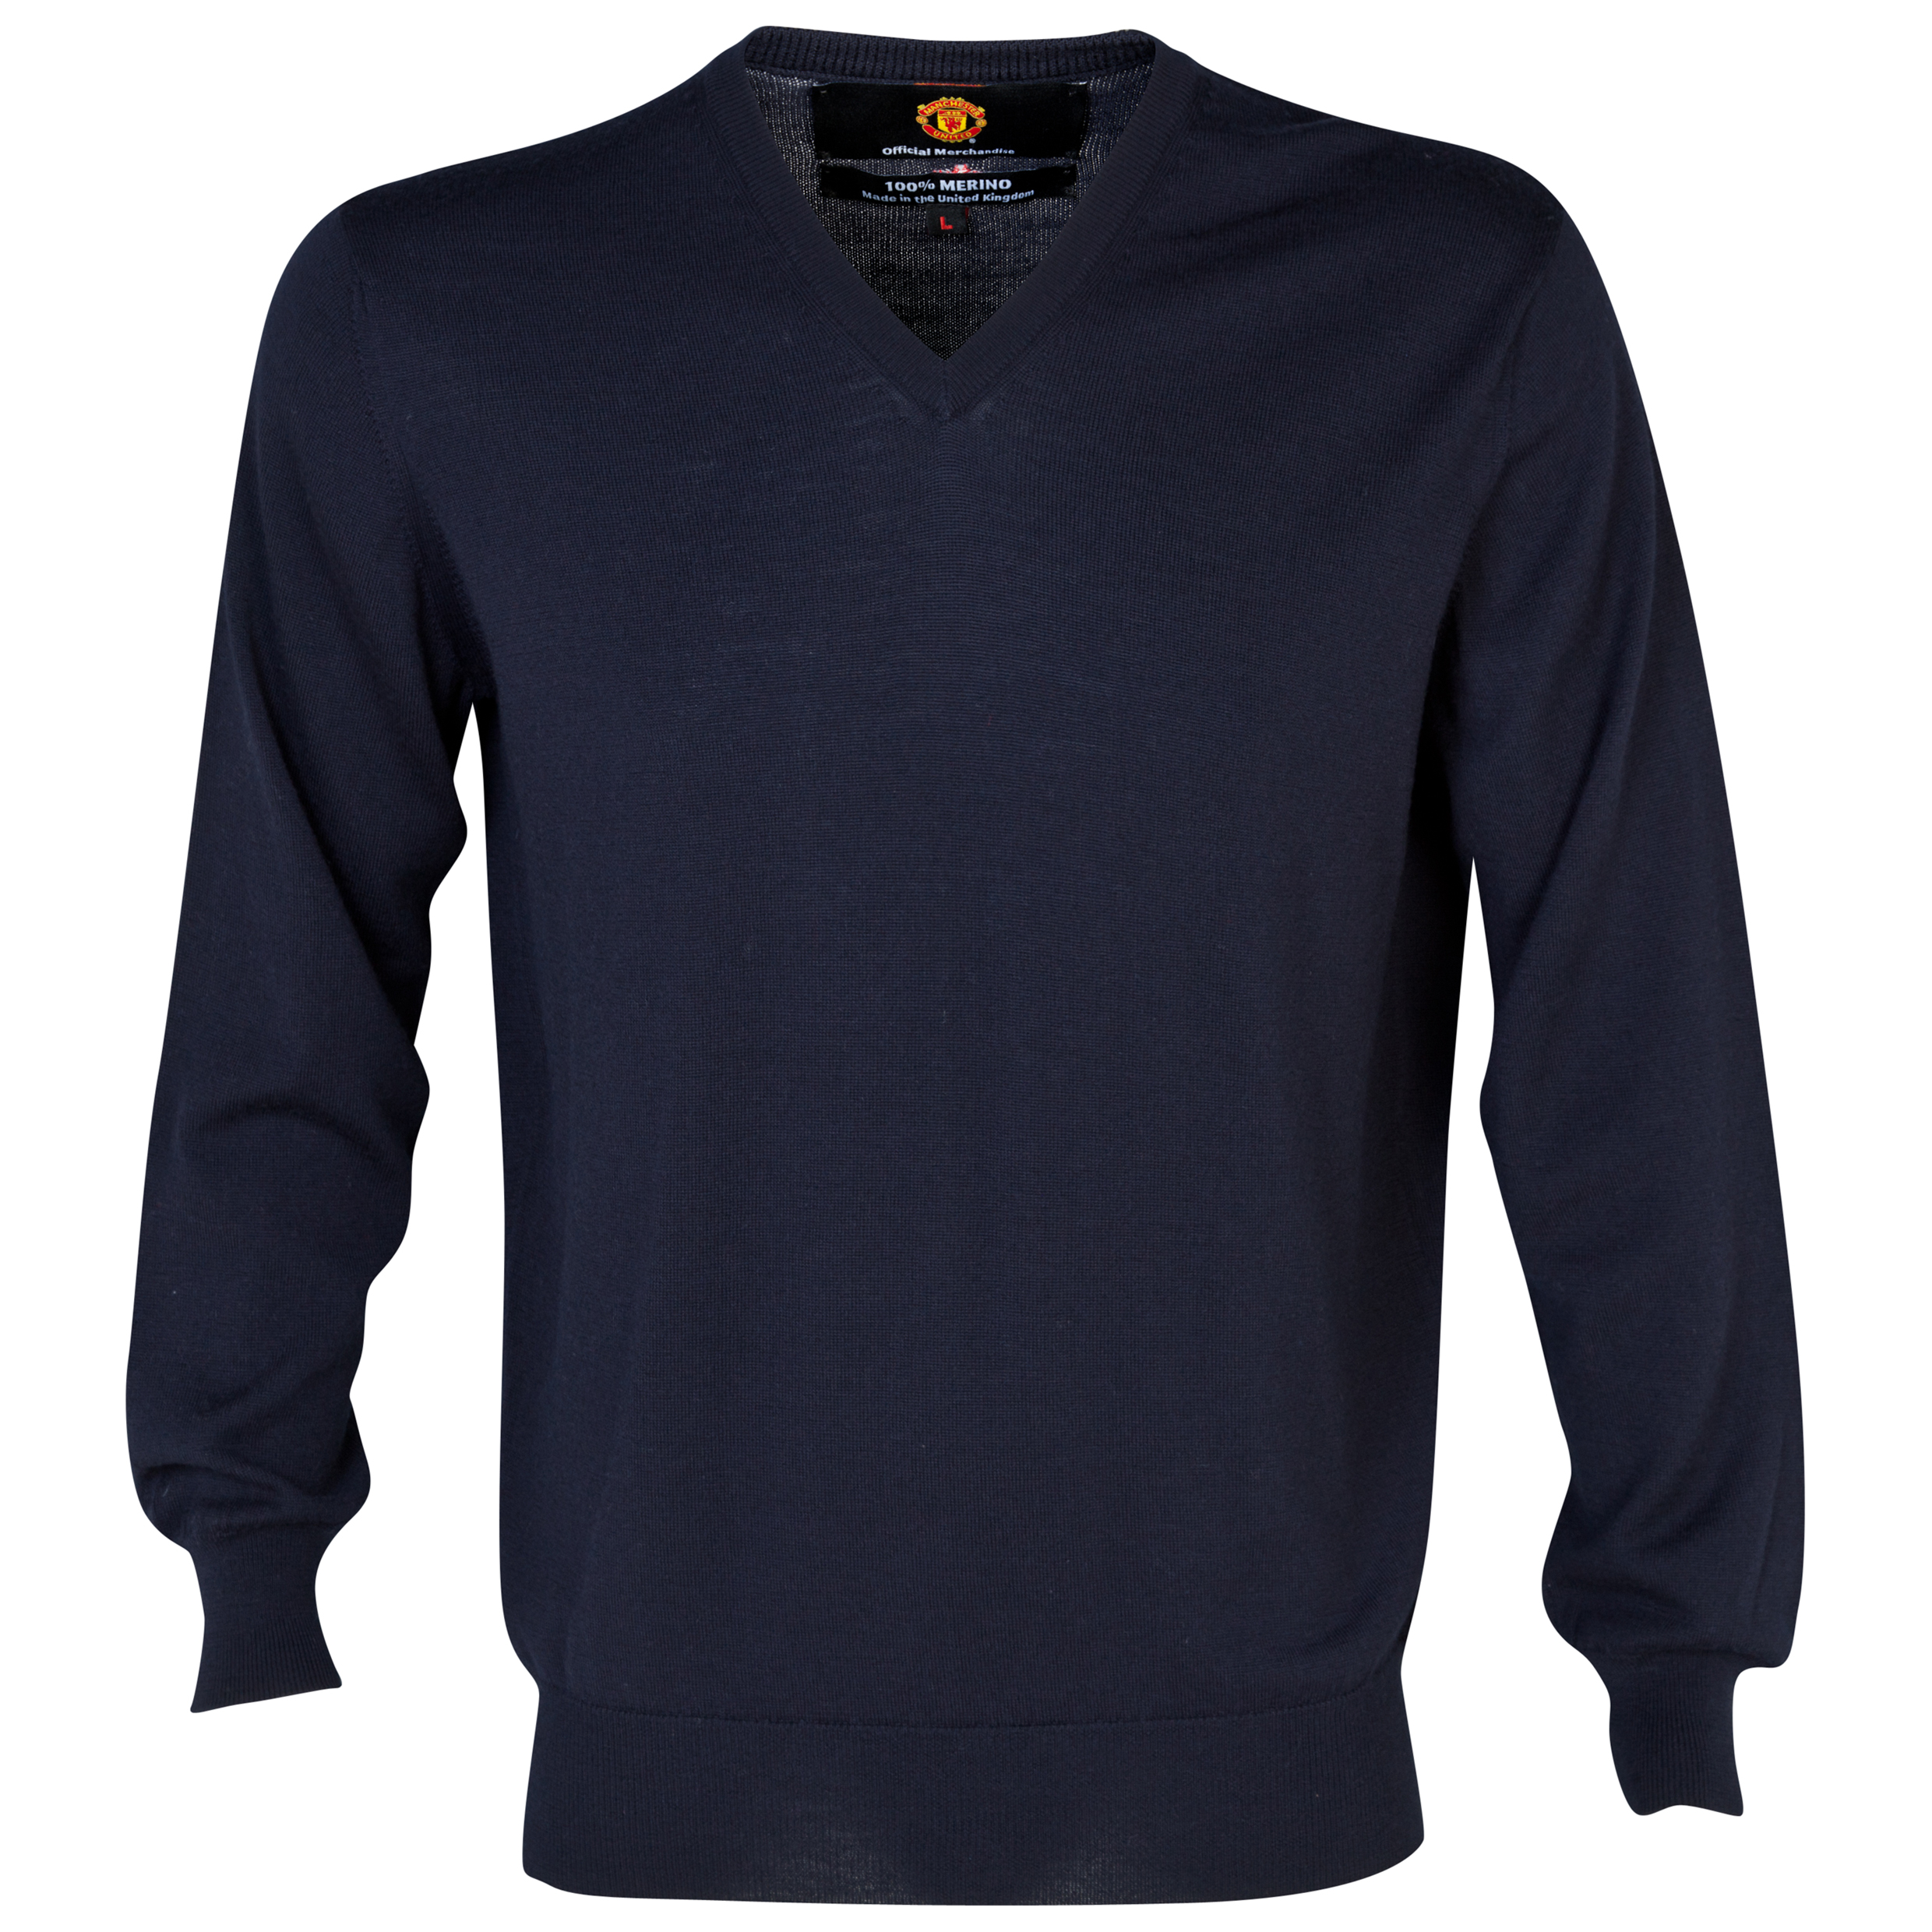 Manchester United Merino V Neck Sweater  - Mens Navy